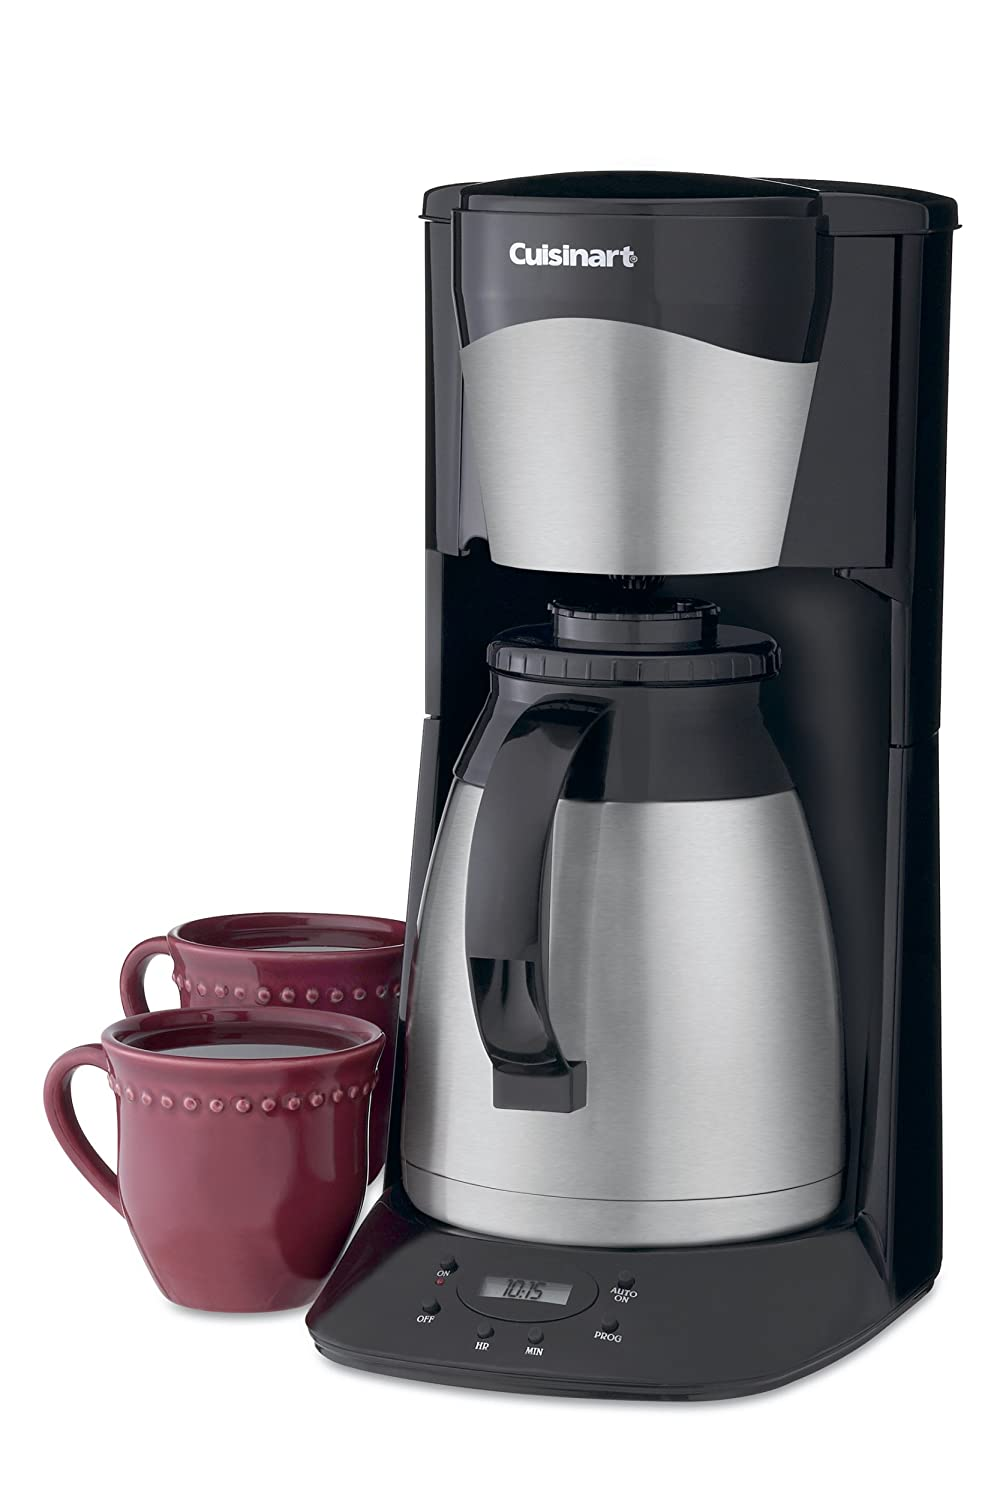 Coffee maker with grinder and thermal carafe - Amazon Com Cuisinart Dtc 975bkn 12 Cup Programmable Thermal Brewer Black Drip Coffeemakers Kitchen Dining